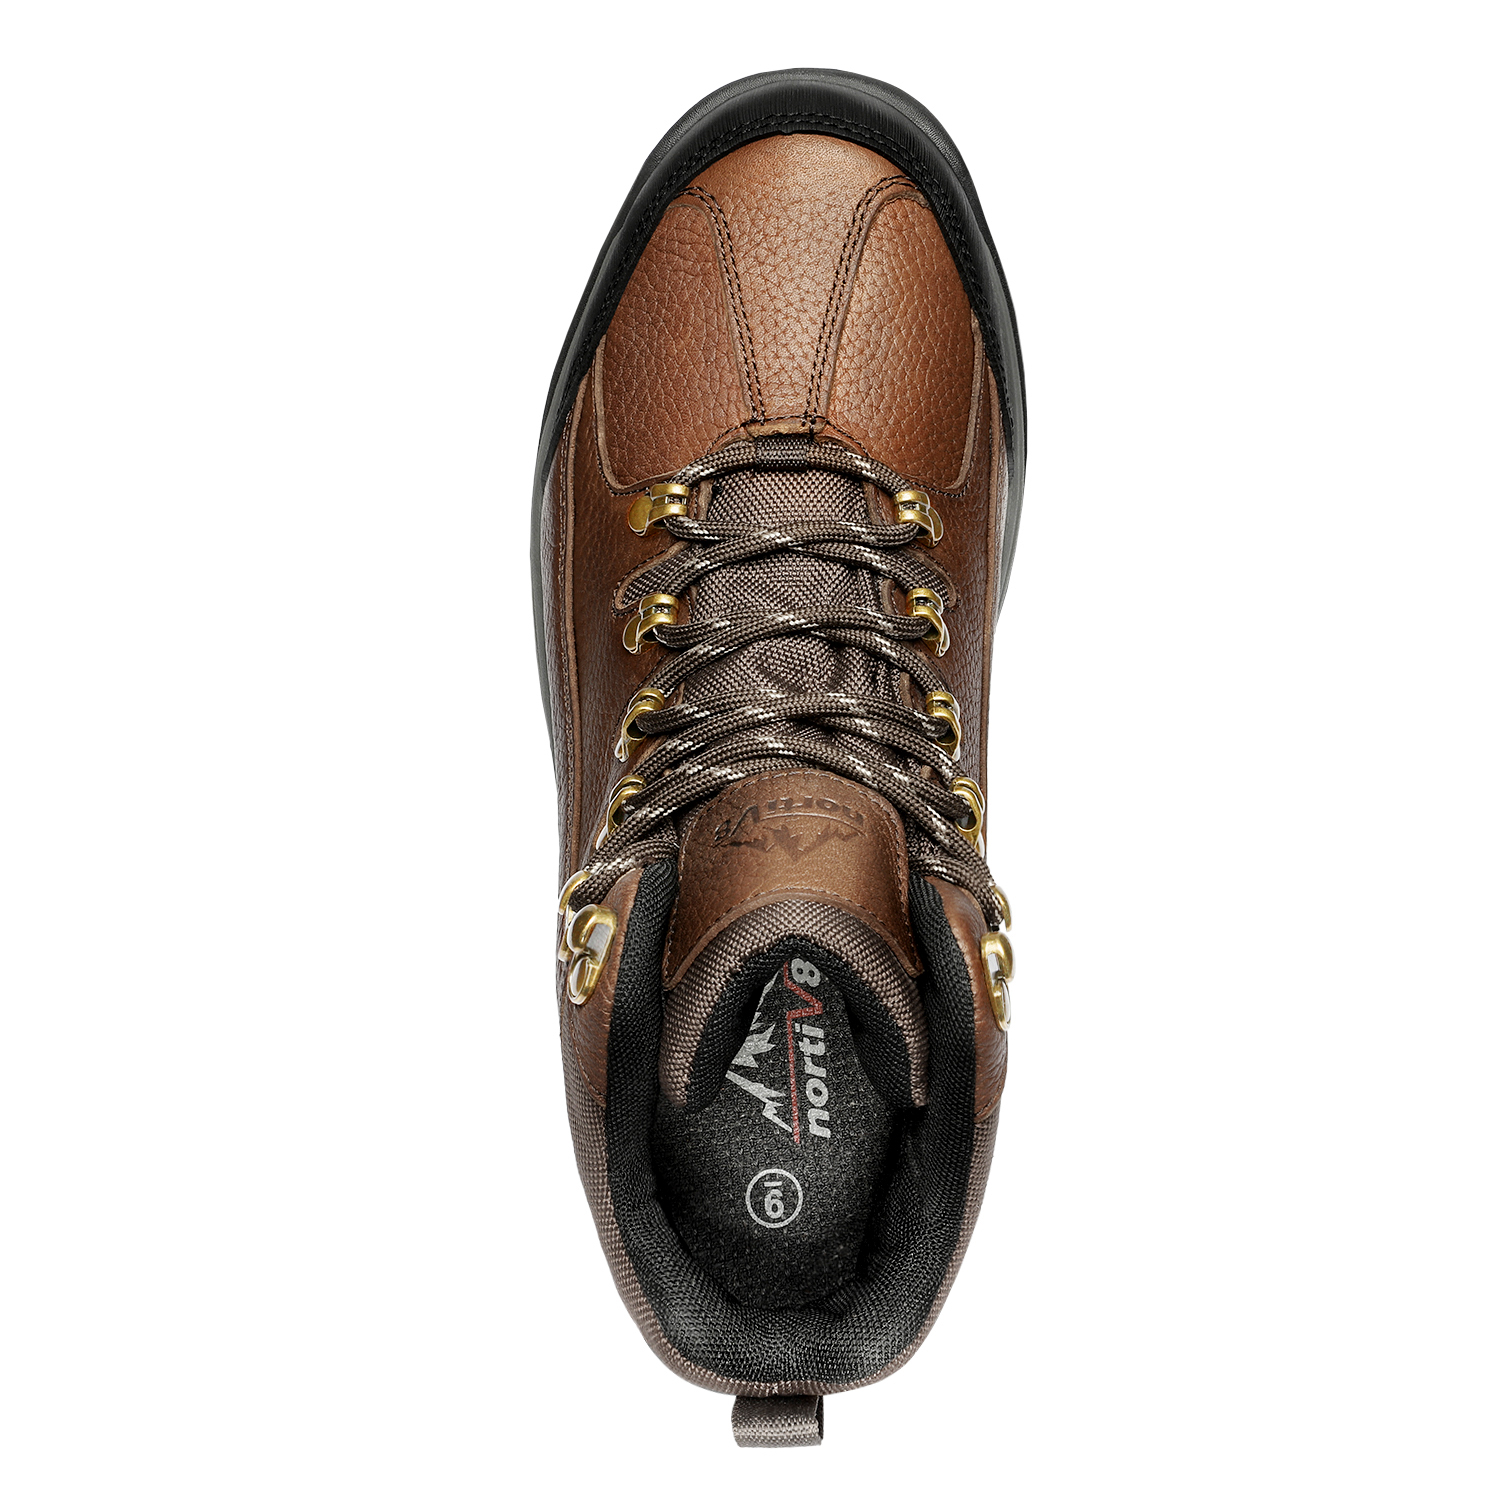 NORTIV-8-Men-039-s-Safety-Shoes-Steel-Toe-Work-Boots-Indestructible-Waterproof-Boots thumbnail 10